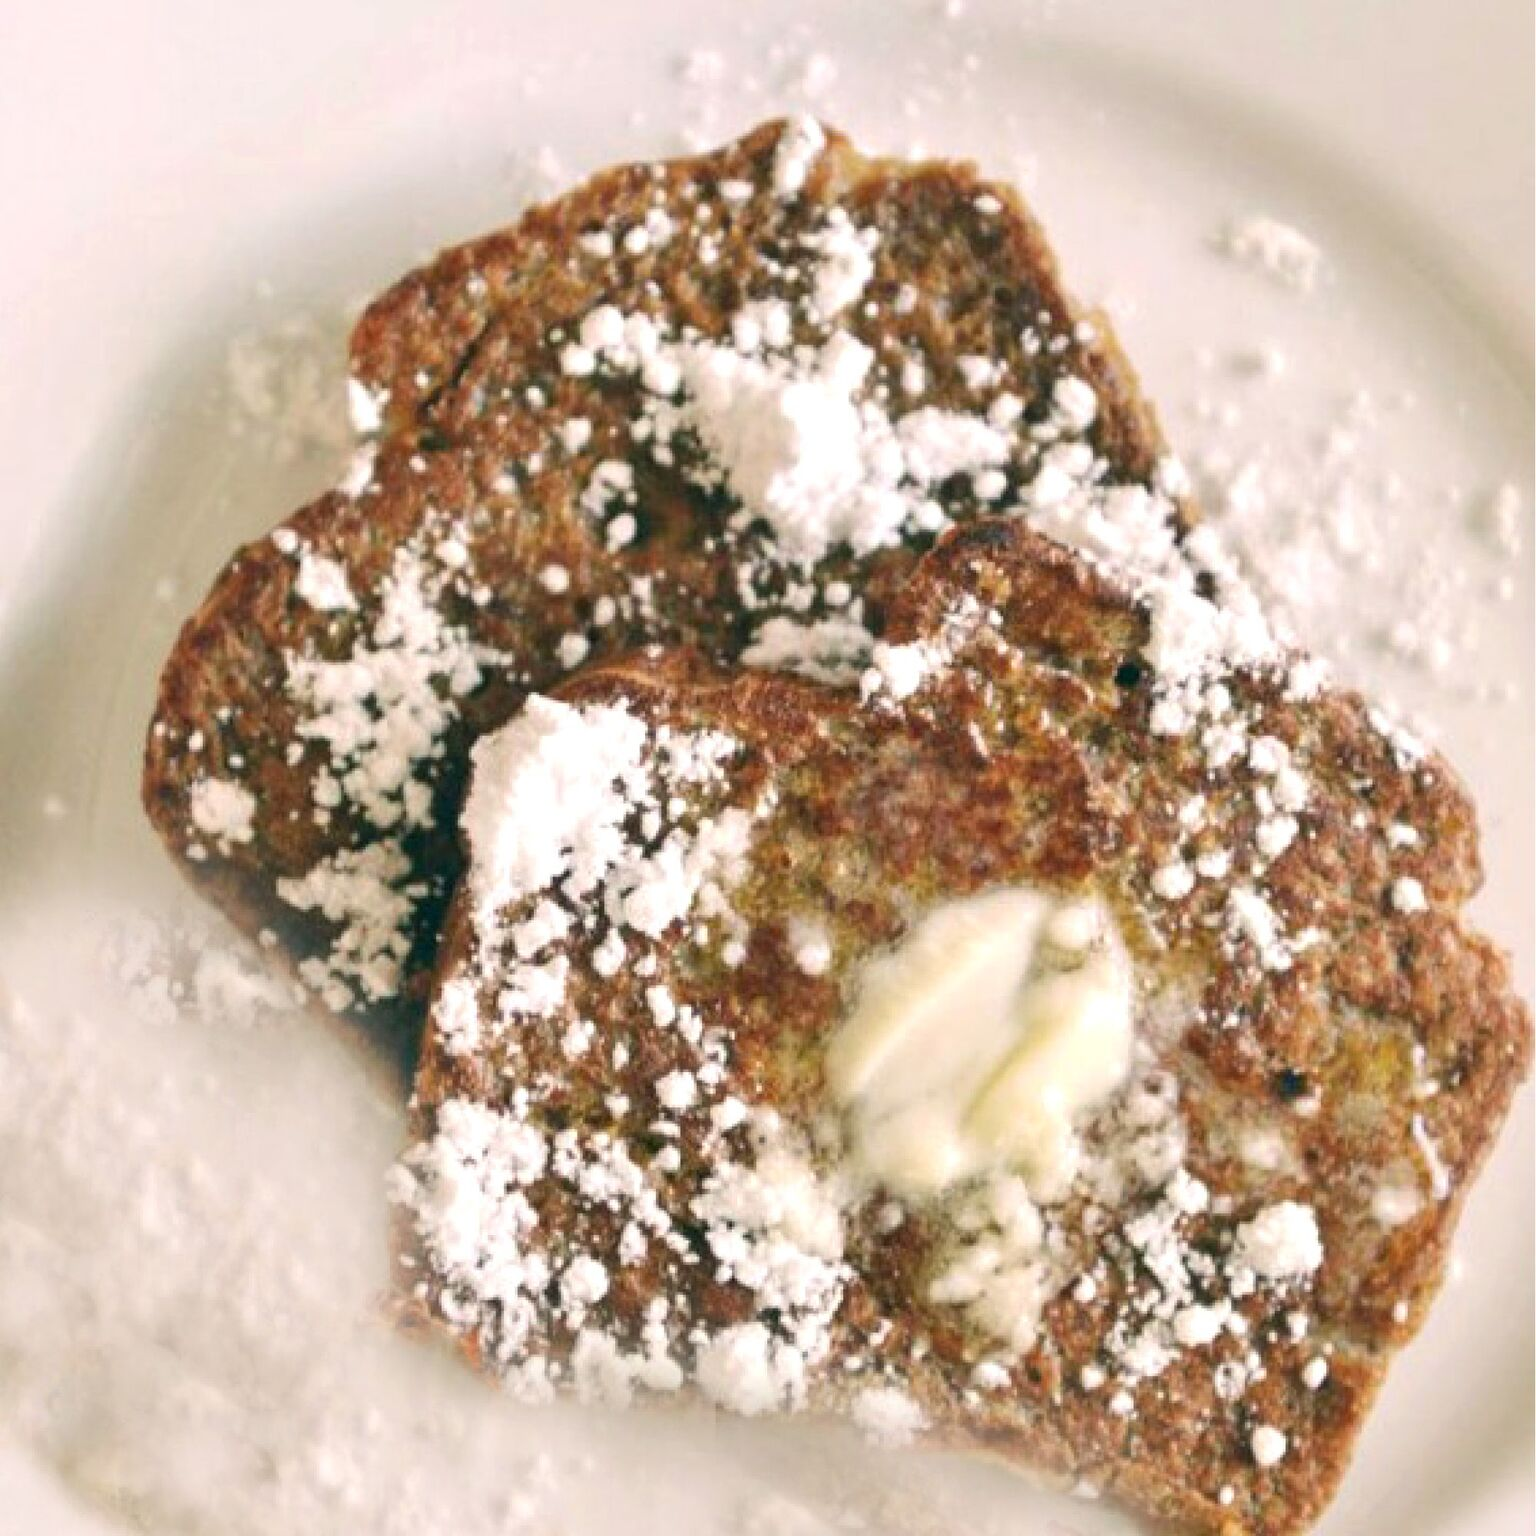 Ever wished you could have pumpkin pie for breakfast? This decadent Pumpkin Bread French Toast is surprisingly good-for-you. Seriously AMAZING & perfect for fall!